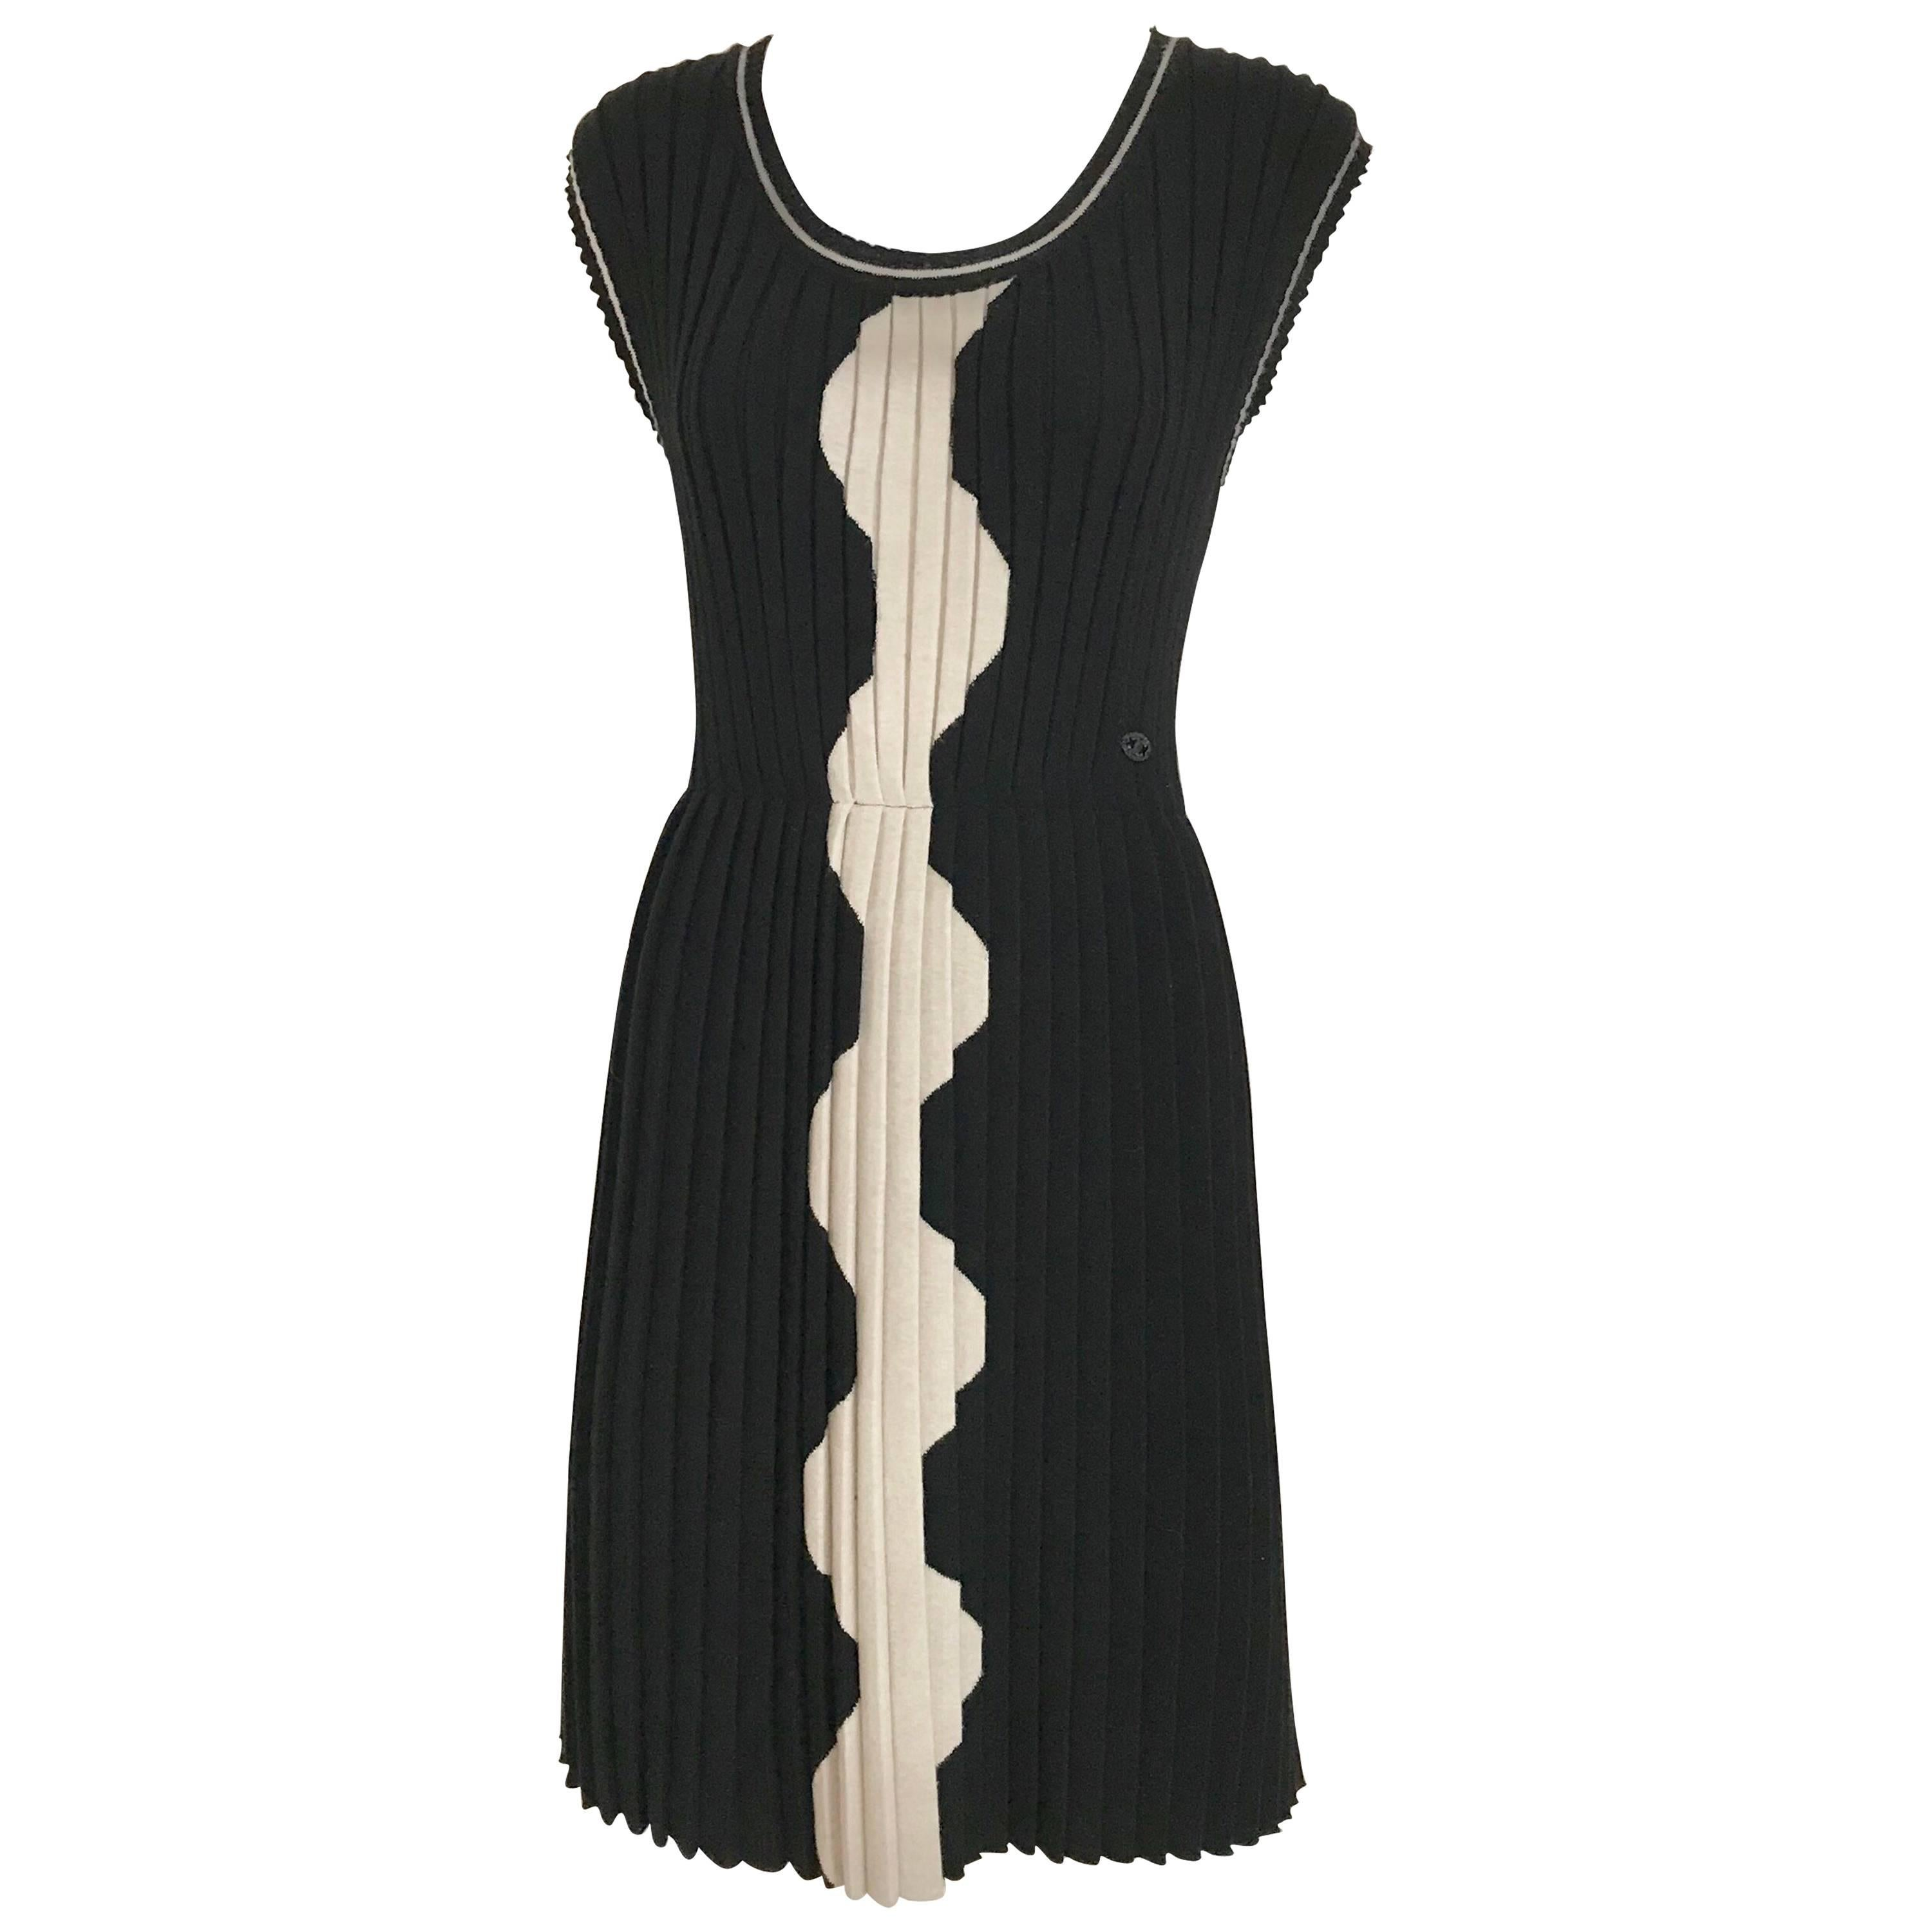 Chanel Black and Creme Knit Dress